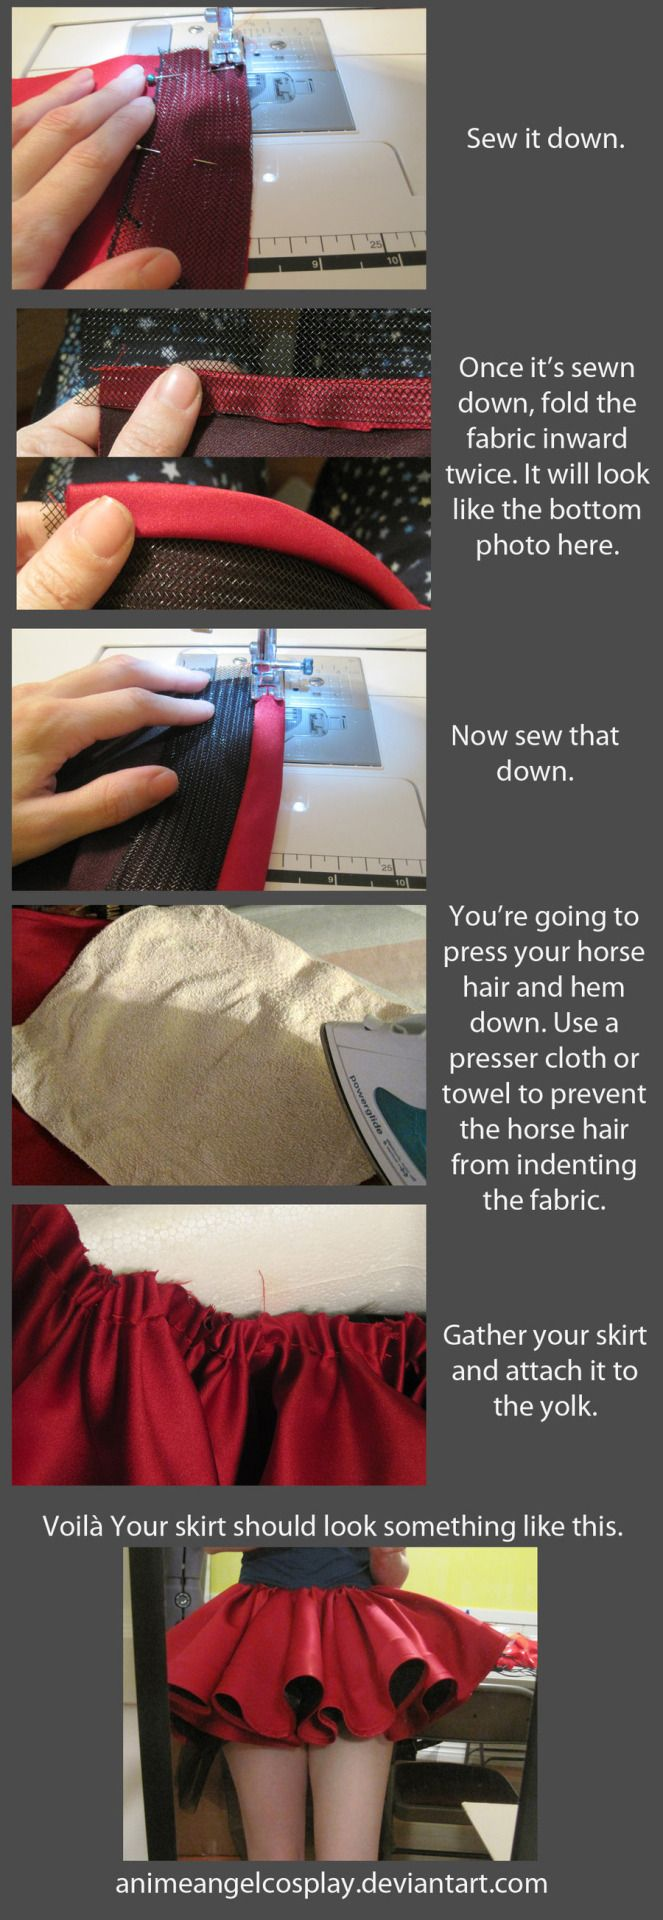 Check out her tutorial on how to use horse hair braid for clamp